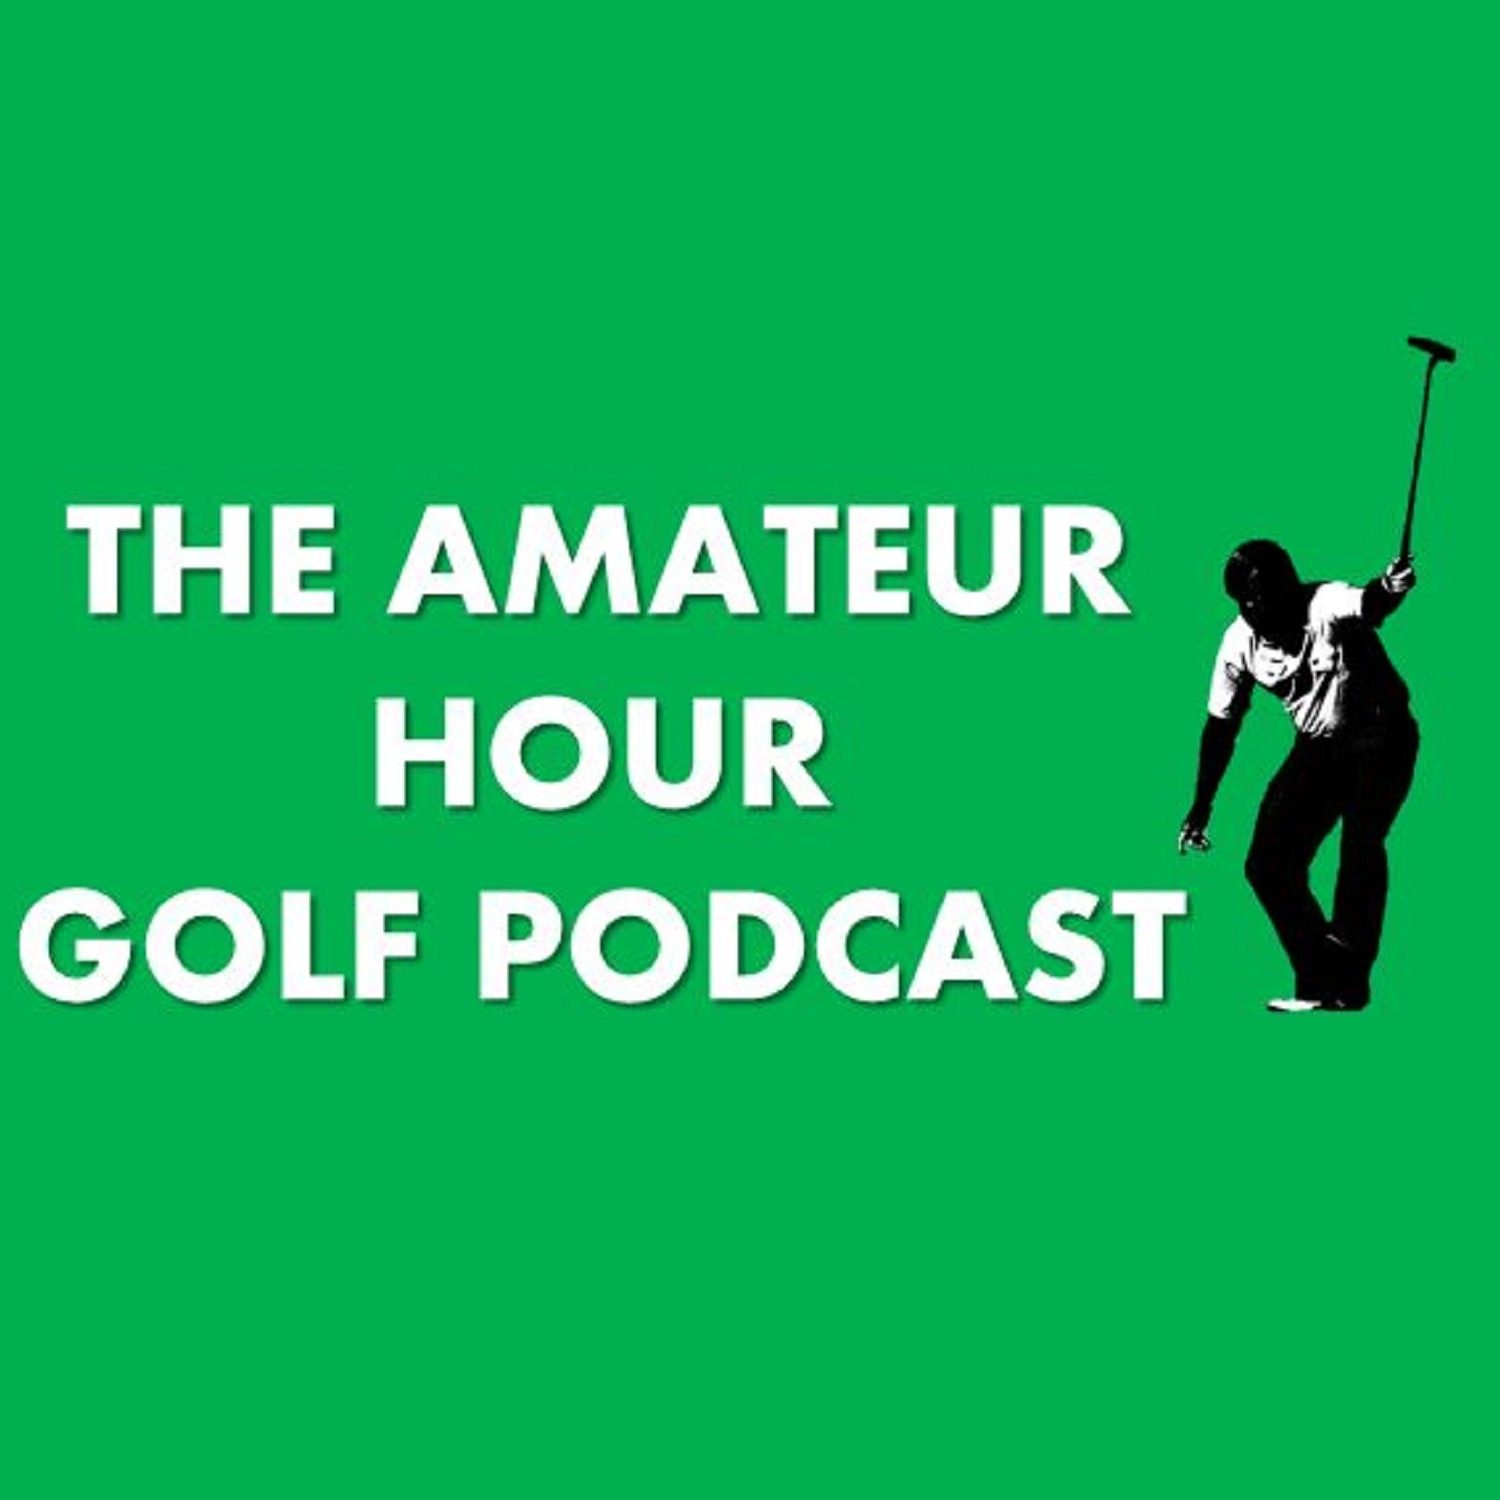 The Amateur Hour Golf Podcast